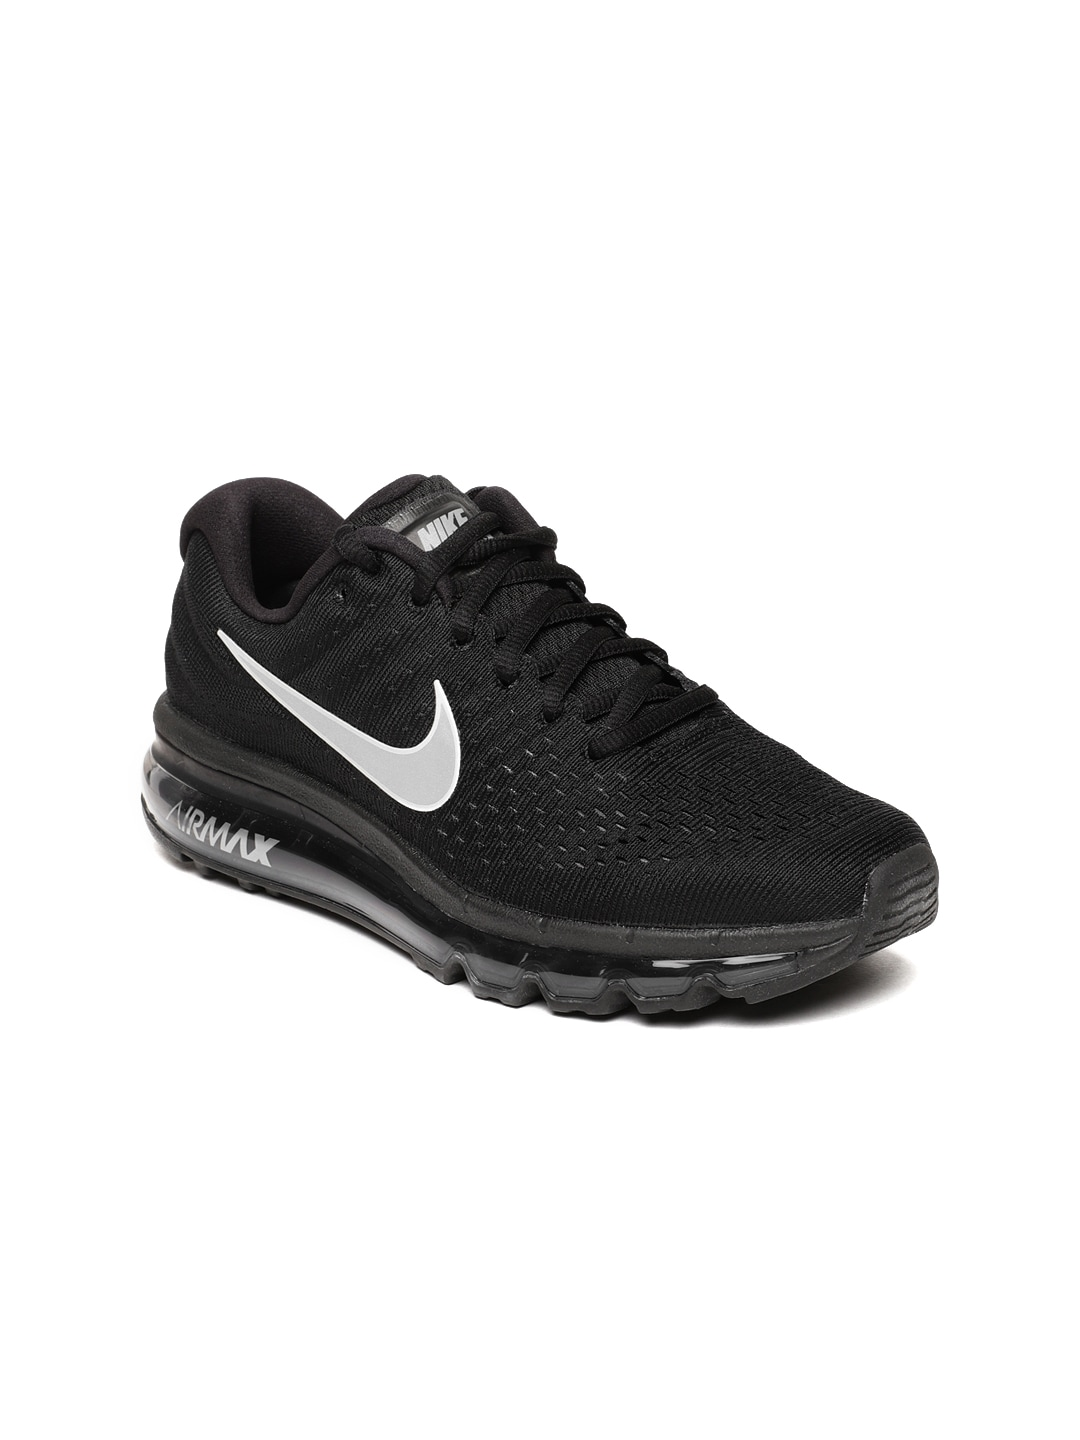 bas prix 72c96 5ae92 Nike Women Black Air Max 2017 Running Shoes